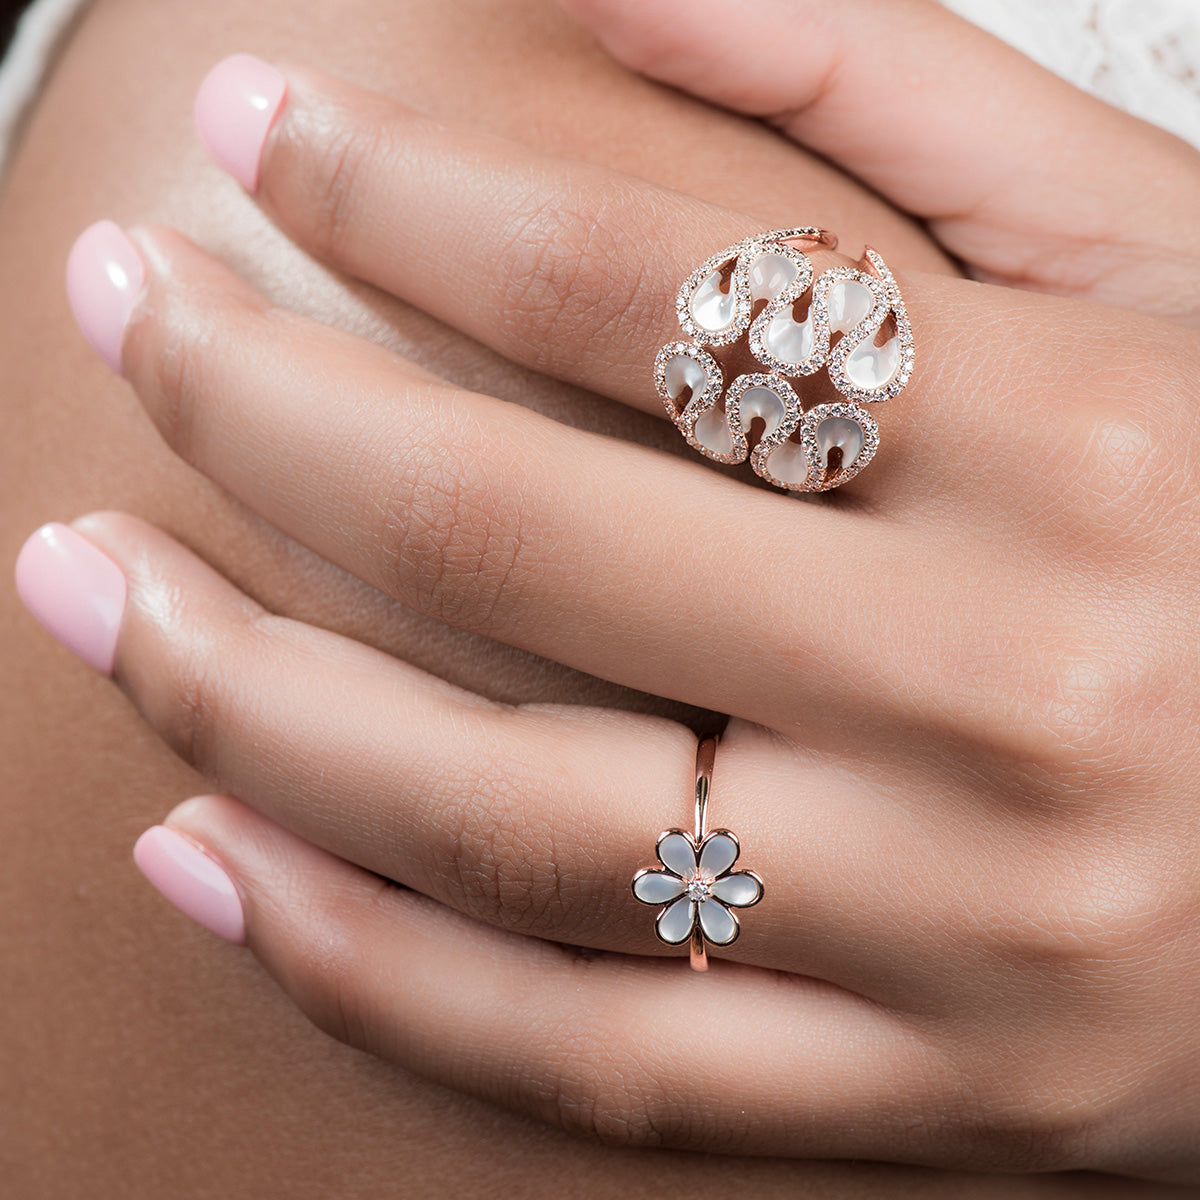 Diamond Flower Ring In Gold And Pearls - estellacollection